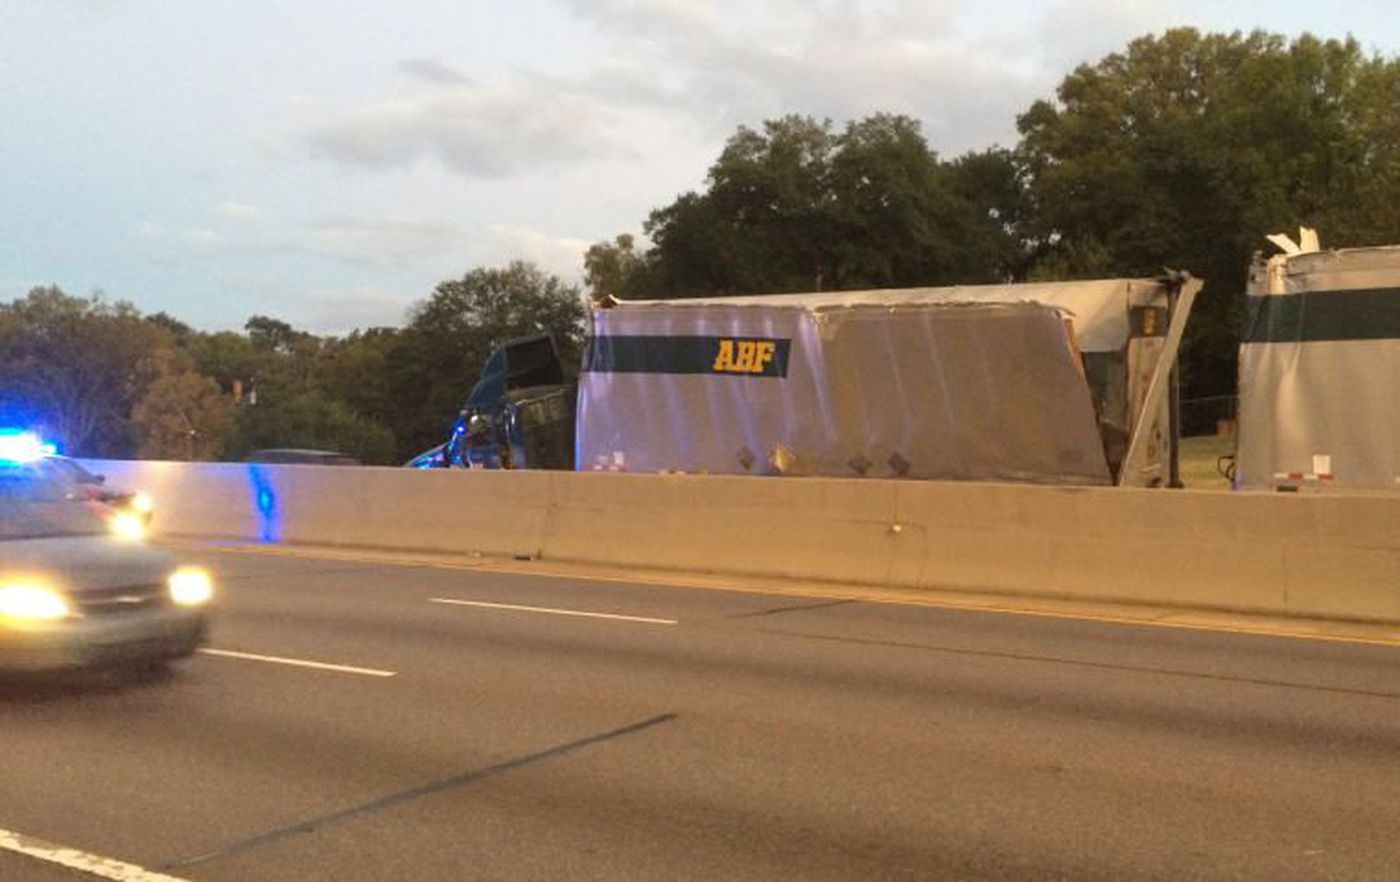 Lanes on I-85 all clear after early morning accident